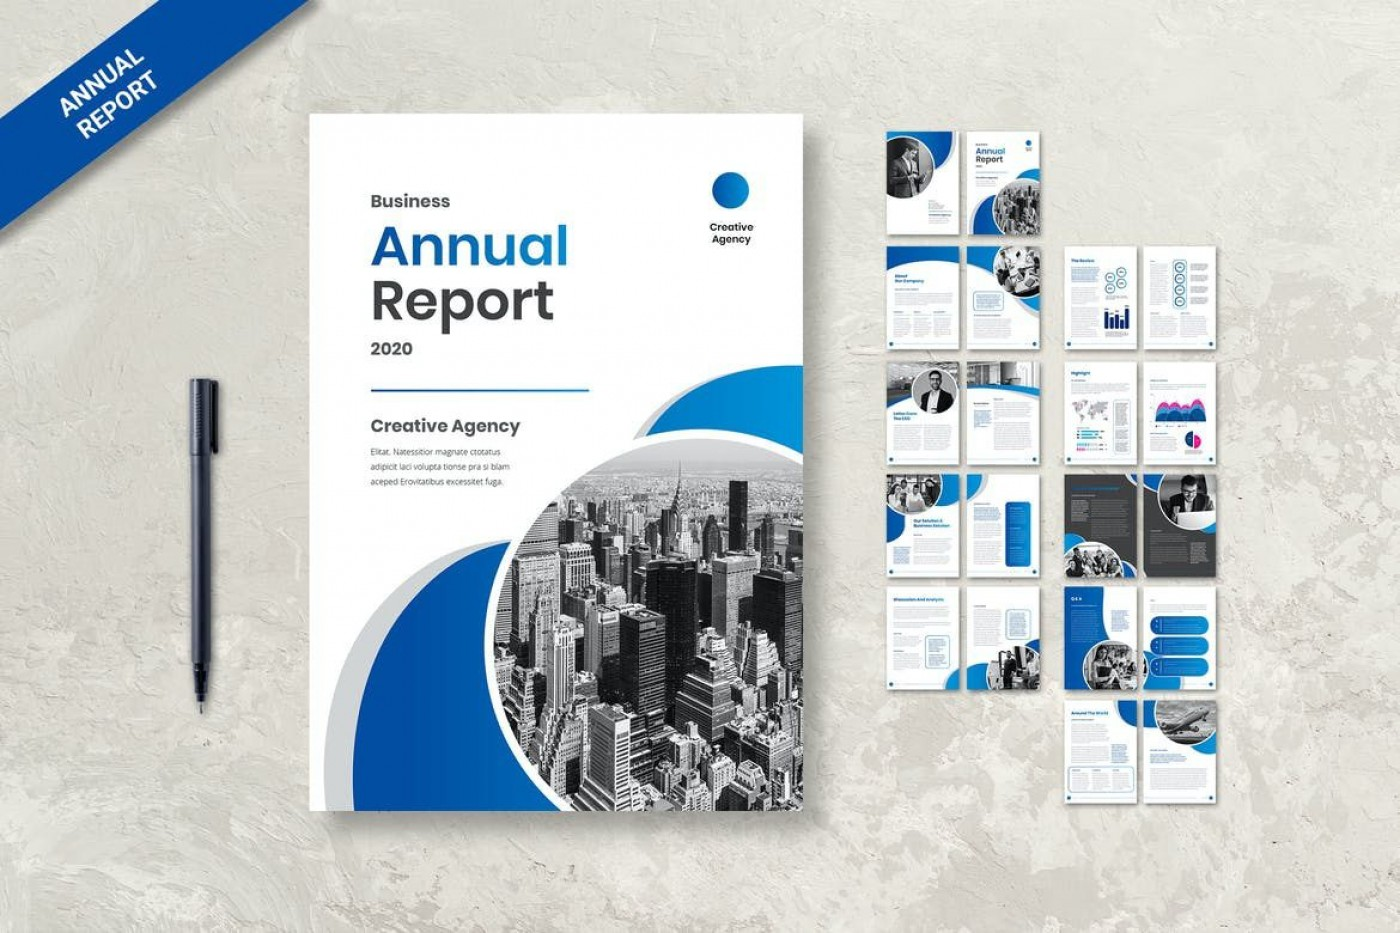 009 Wonderful Free Download Annual Report Cover Design Template High Resolution  In Word Page1400